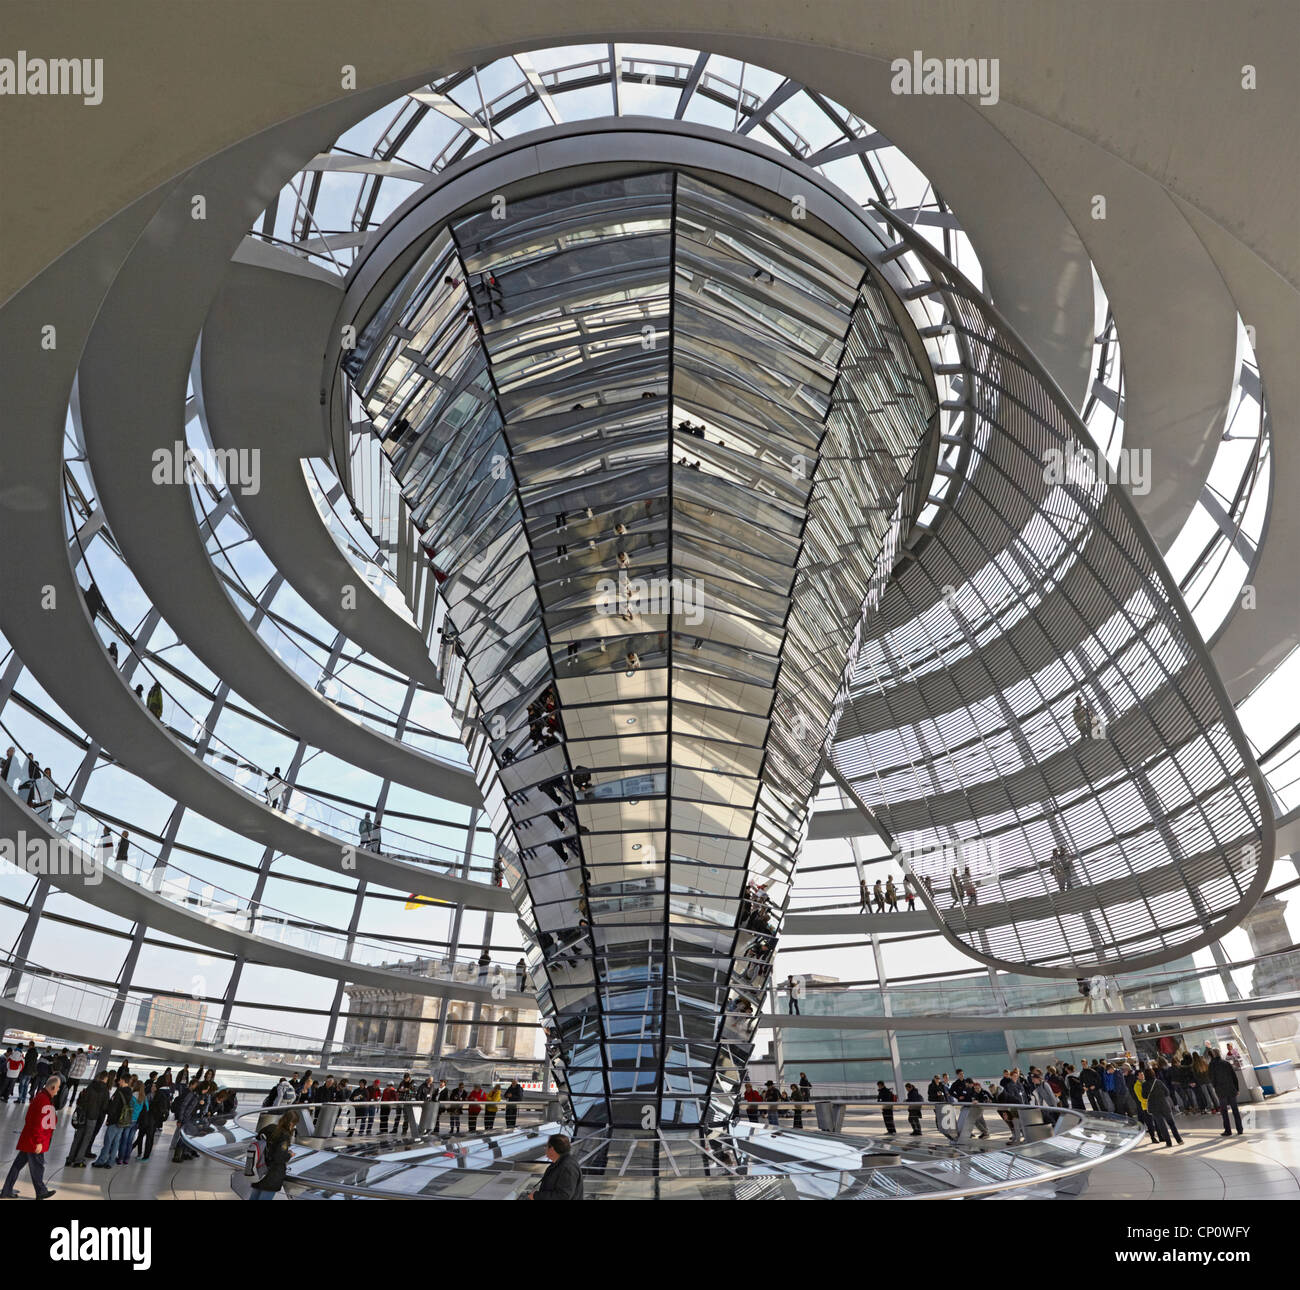 Berlin Reichstag inside the dome - Stock Image